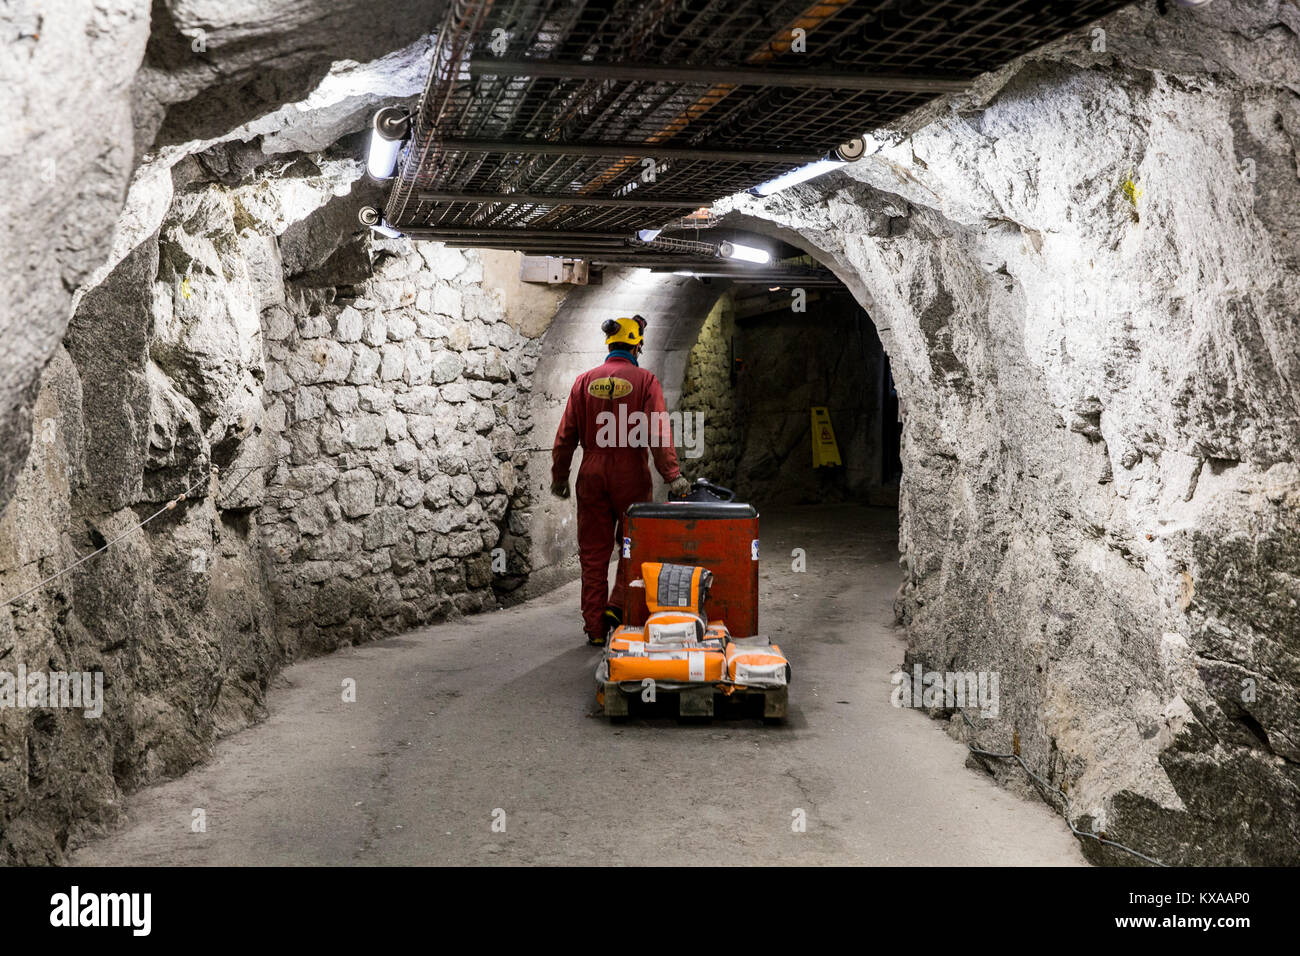 Worker carrying cement on electric pallet truck in of tunnels of Aiguille du Midi, Chamonix Mont-Blanc, Haute Savoie, Stock Photo